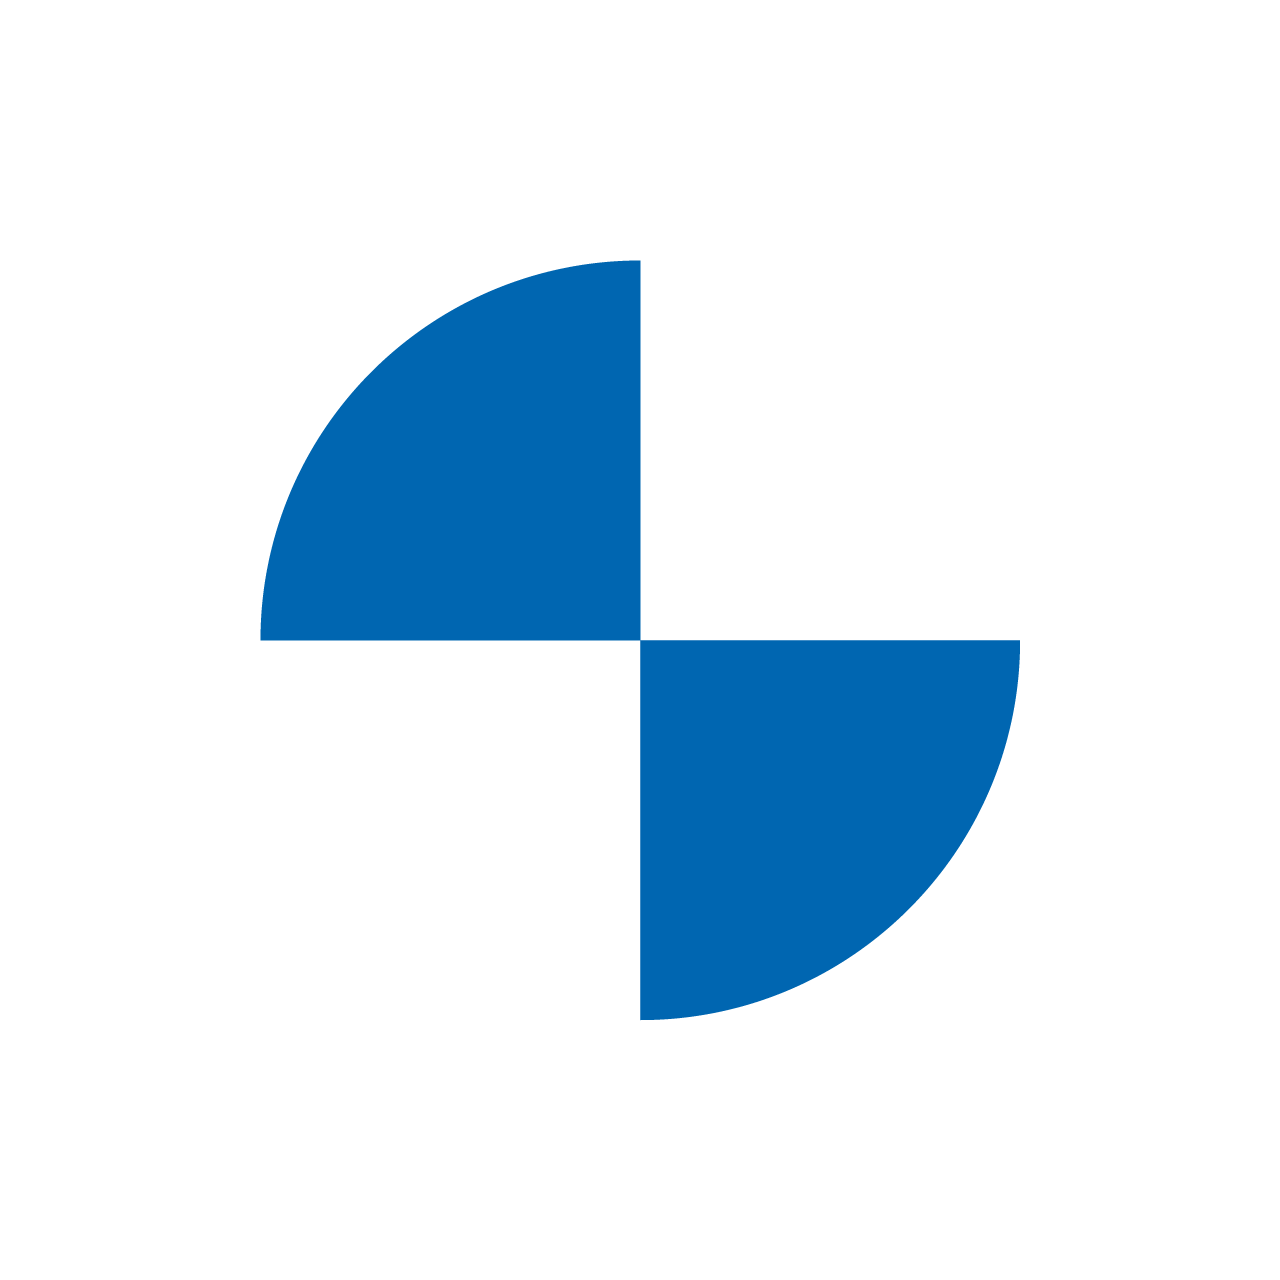 BMW_White-Colour_RGB.png